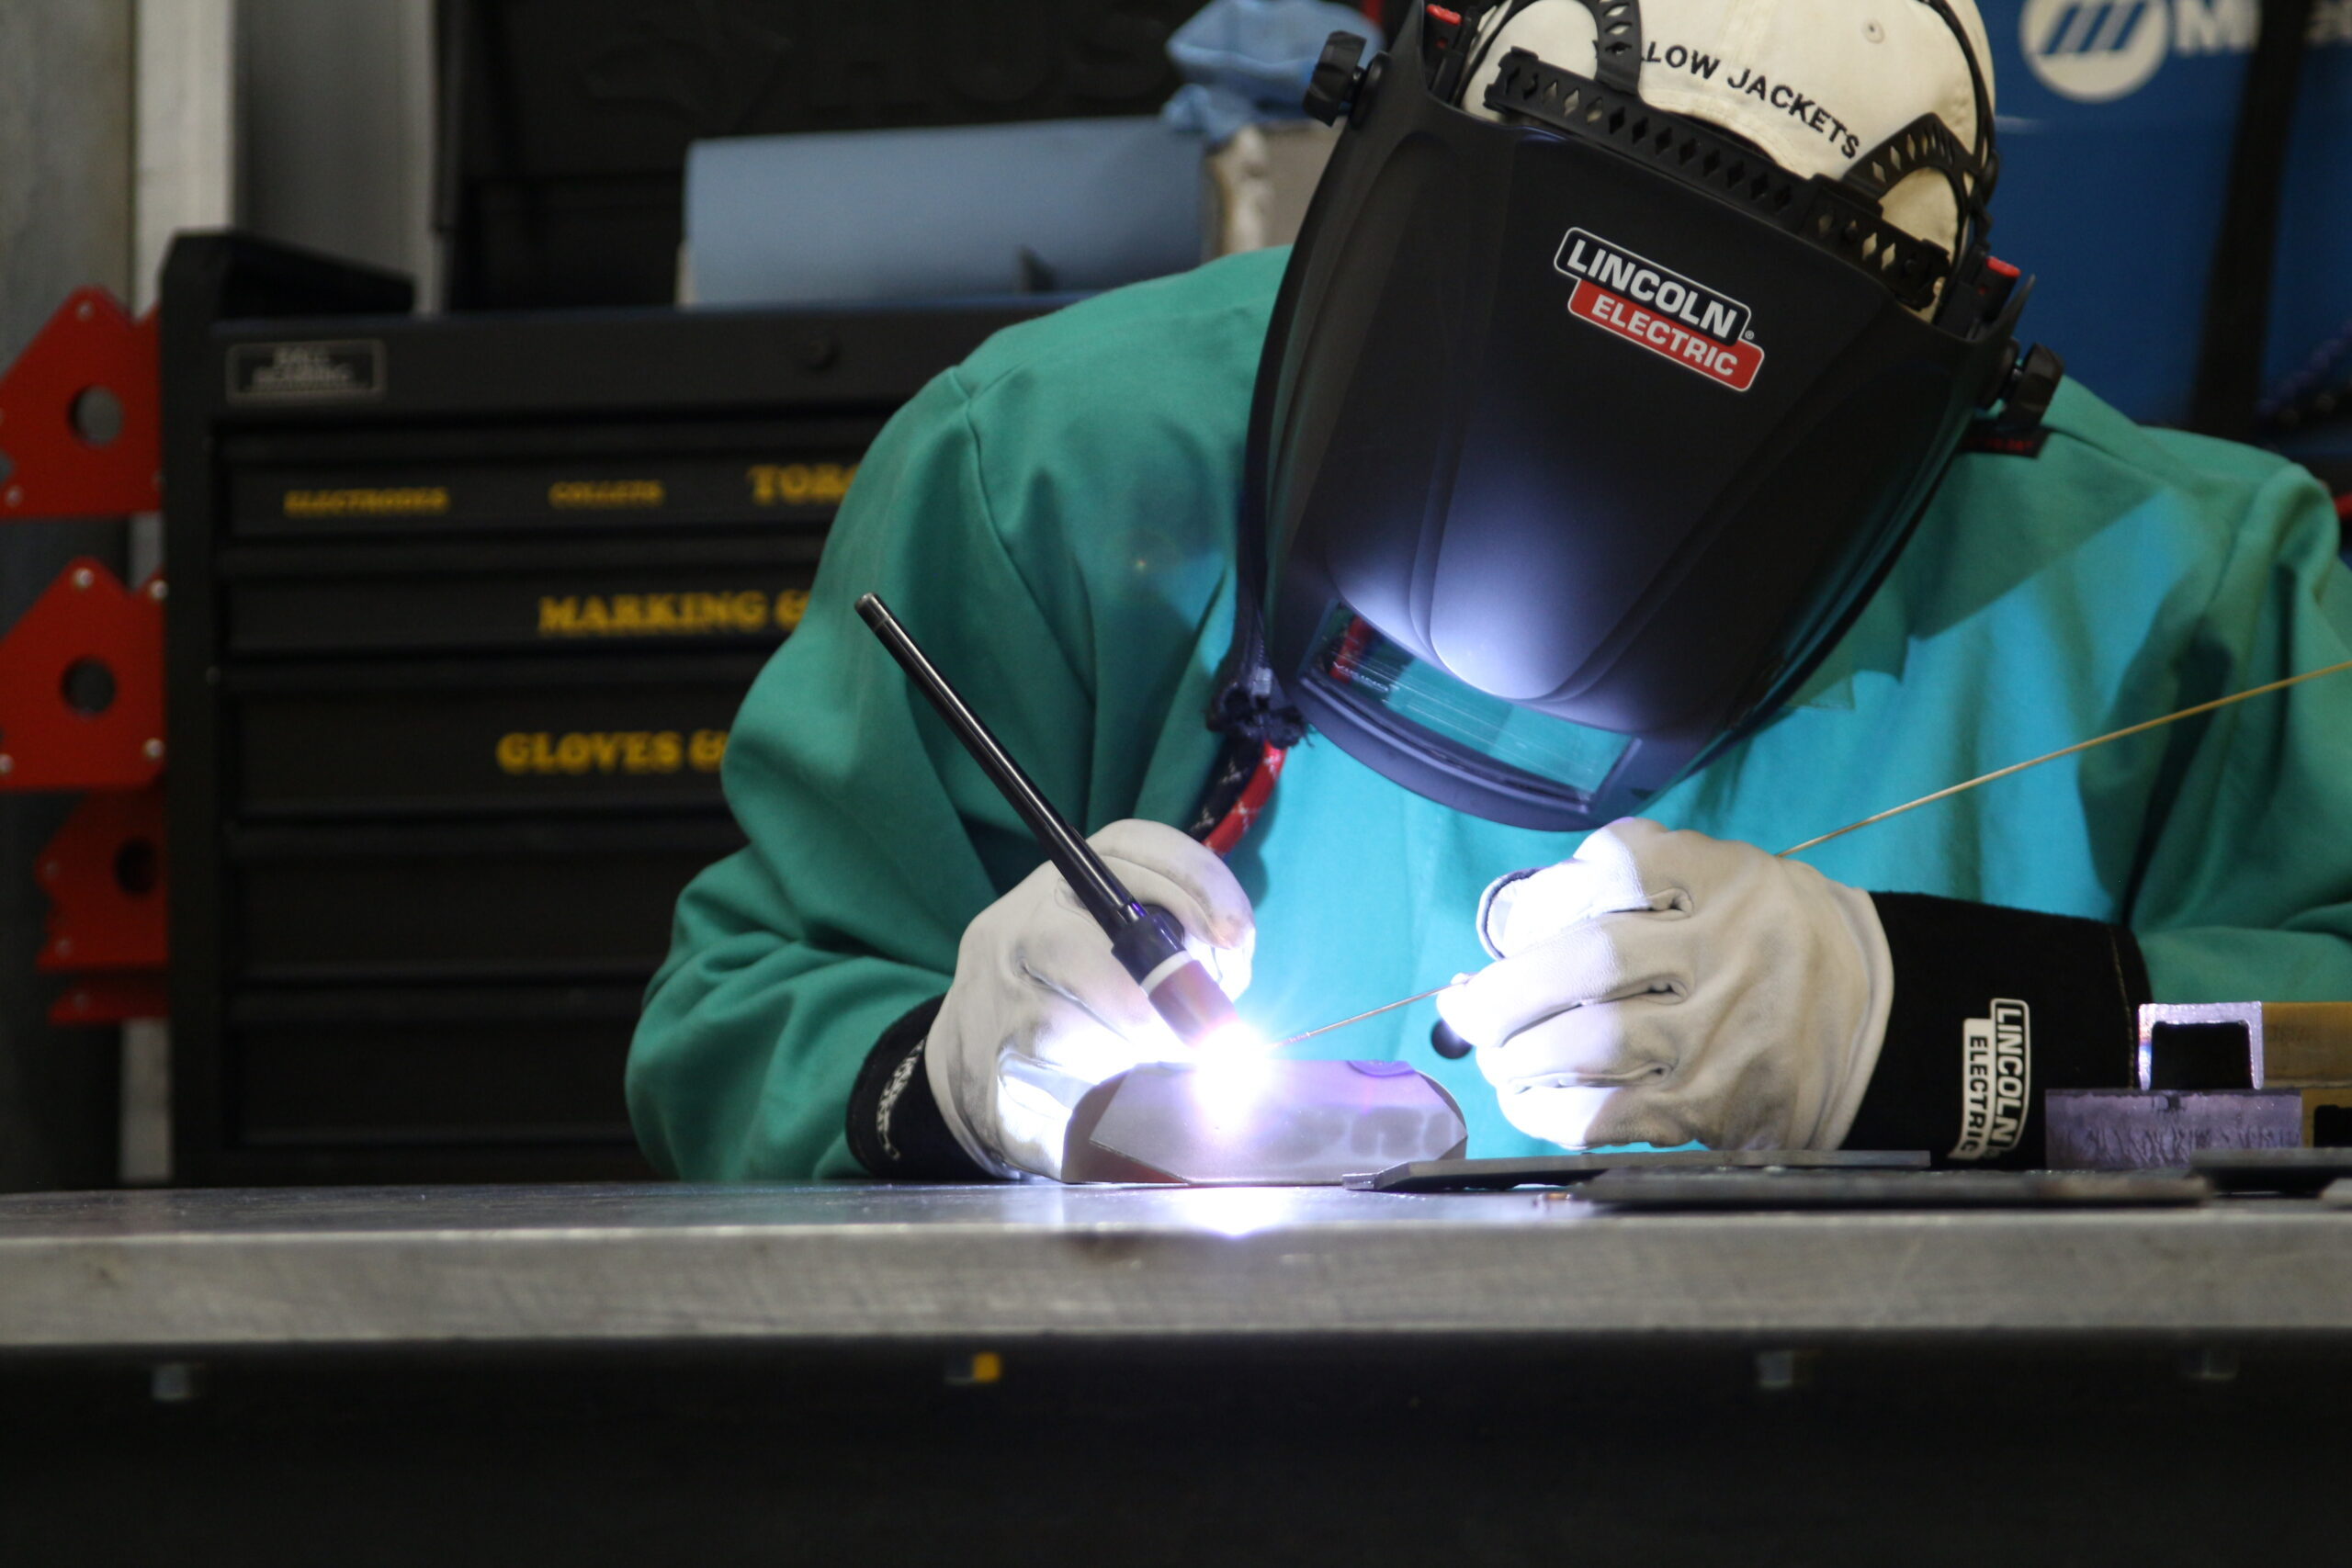 Shows a welding master actively welding using our MIG welder.